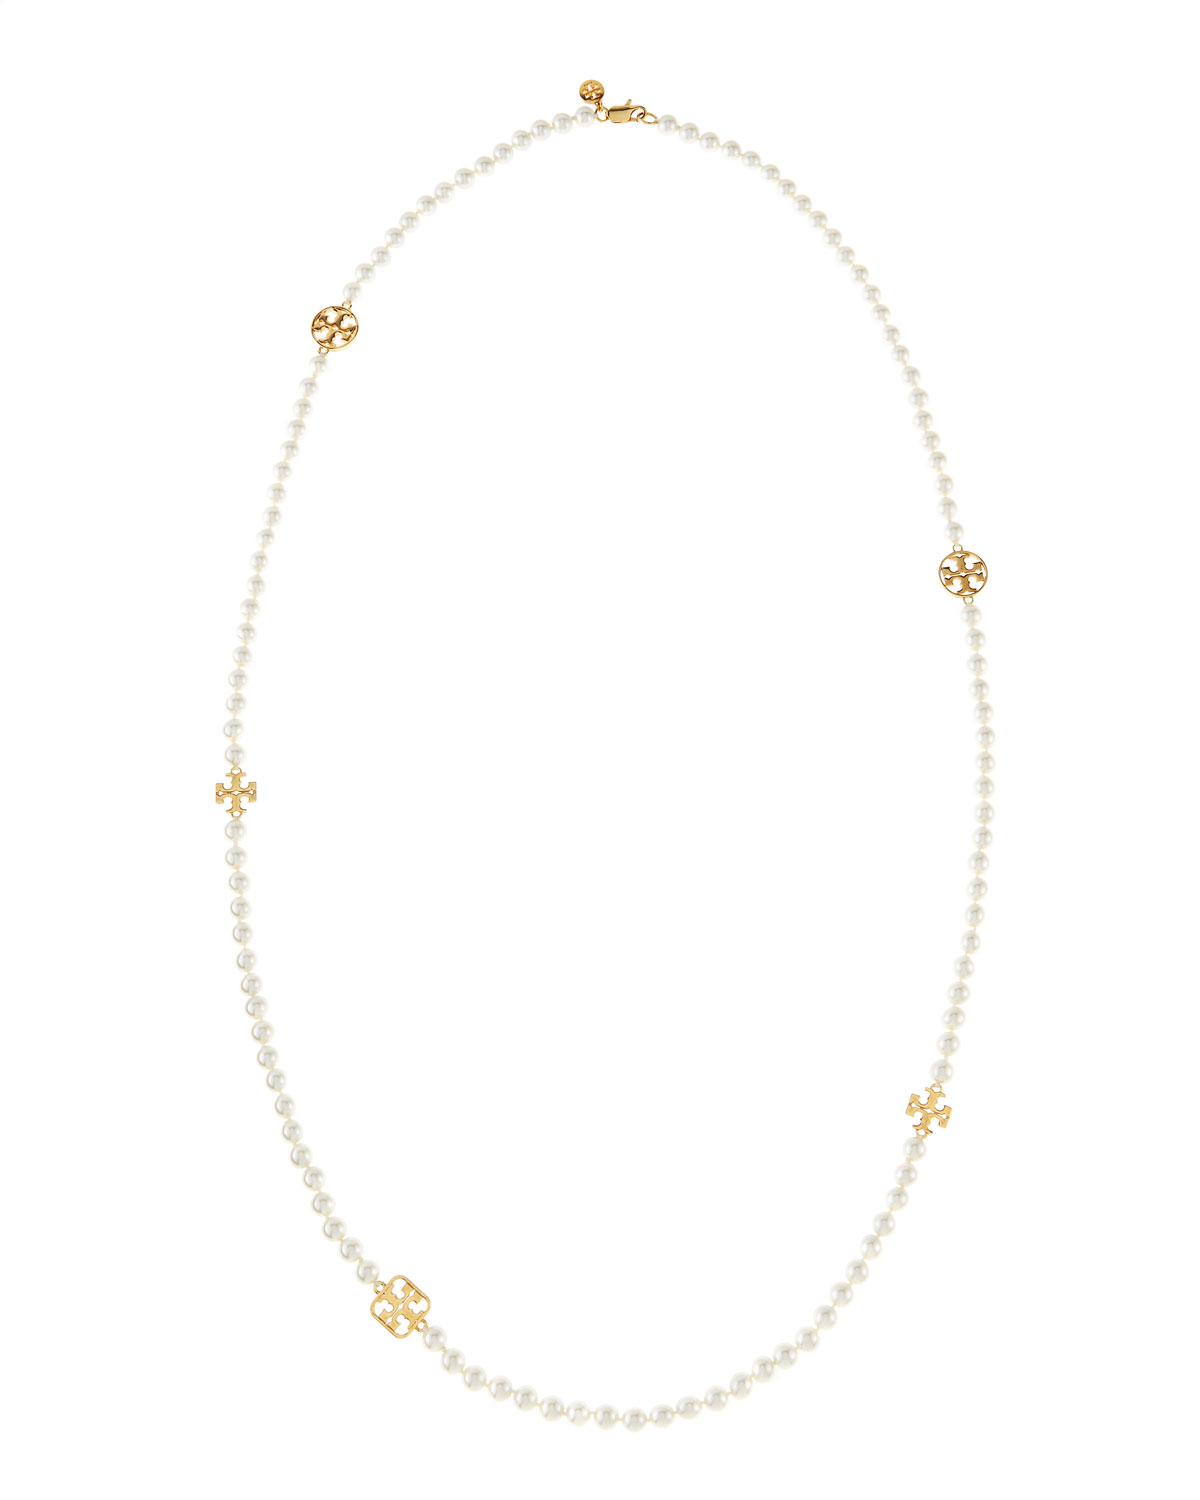 Evie Long Logo-Station Pearly Necklace - Tory Burch